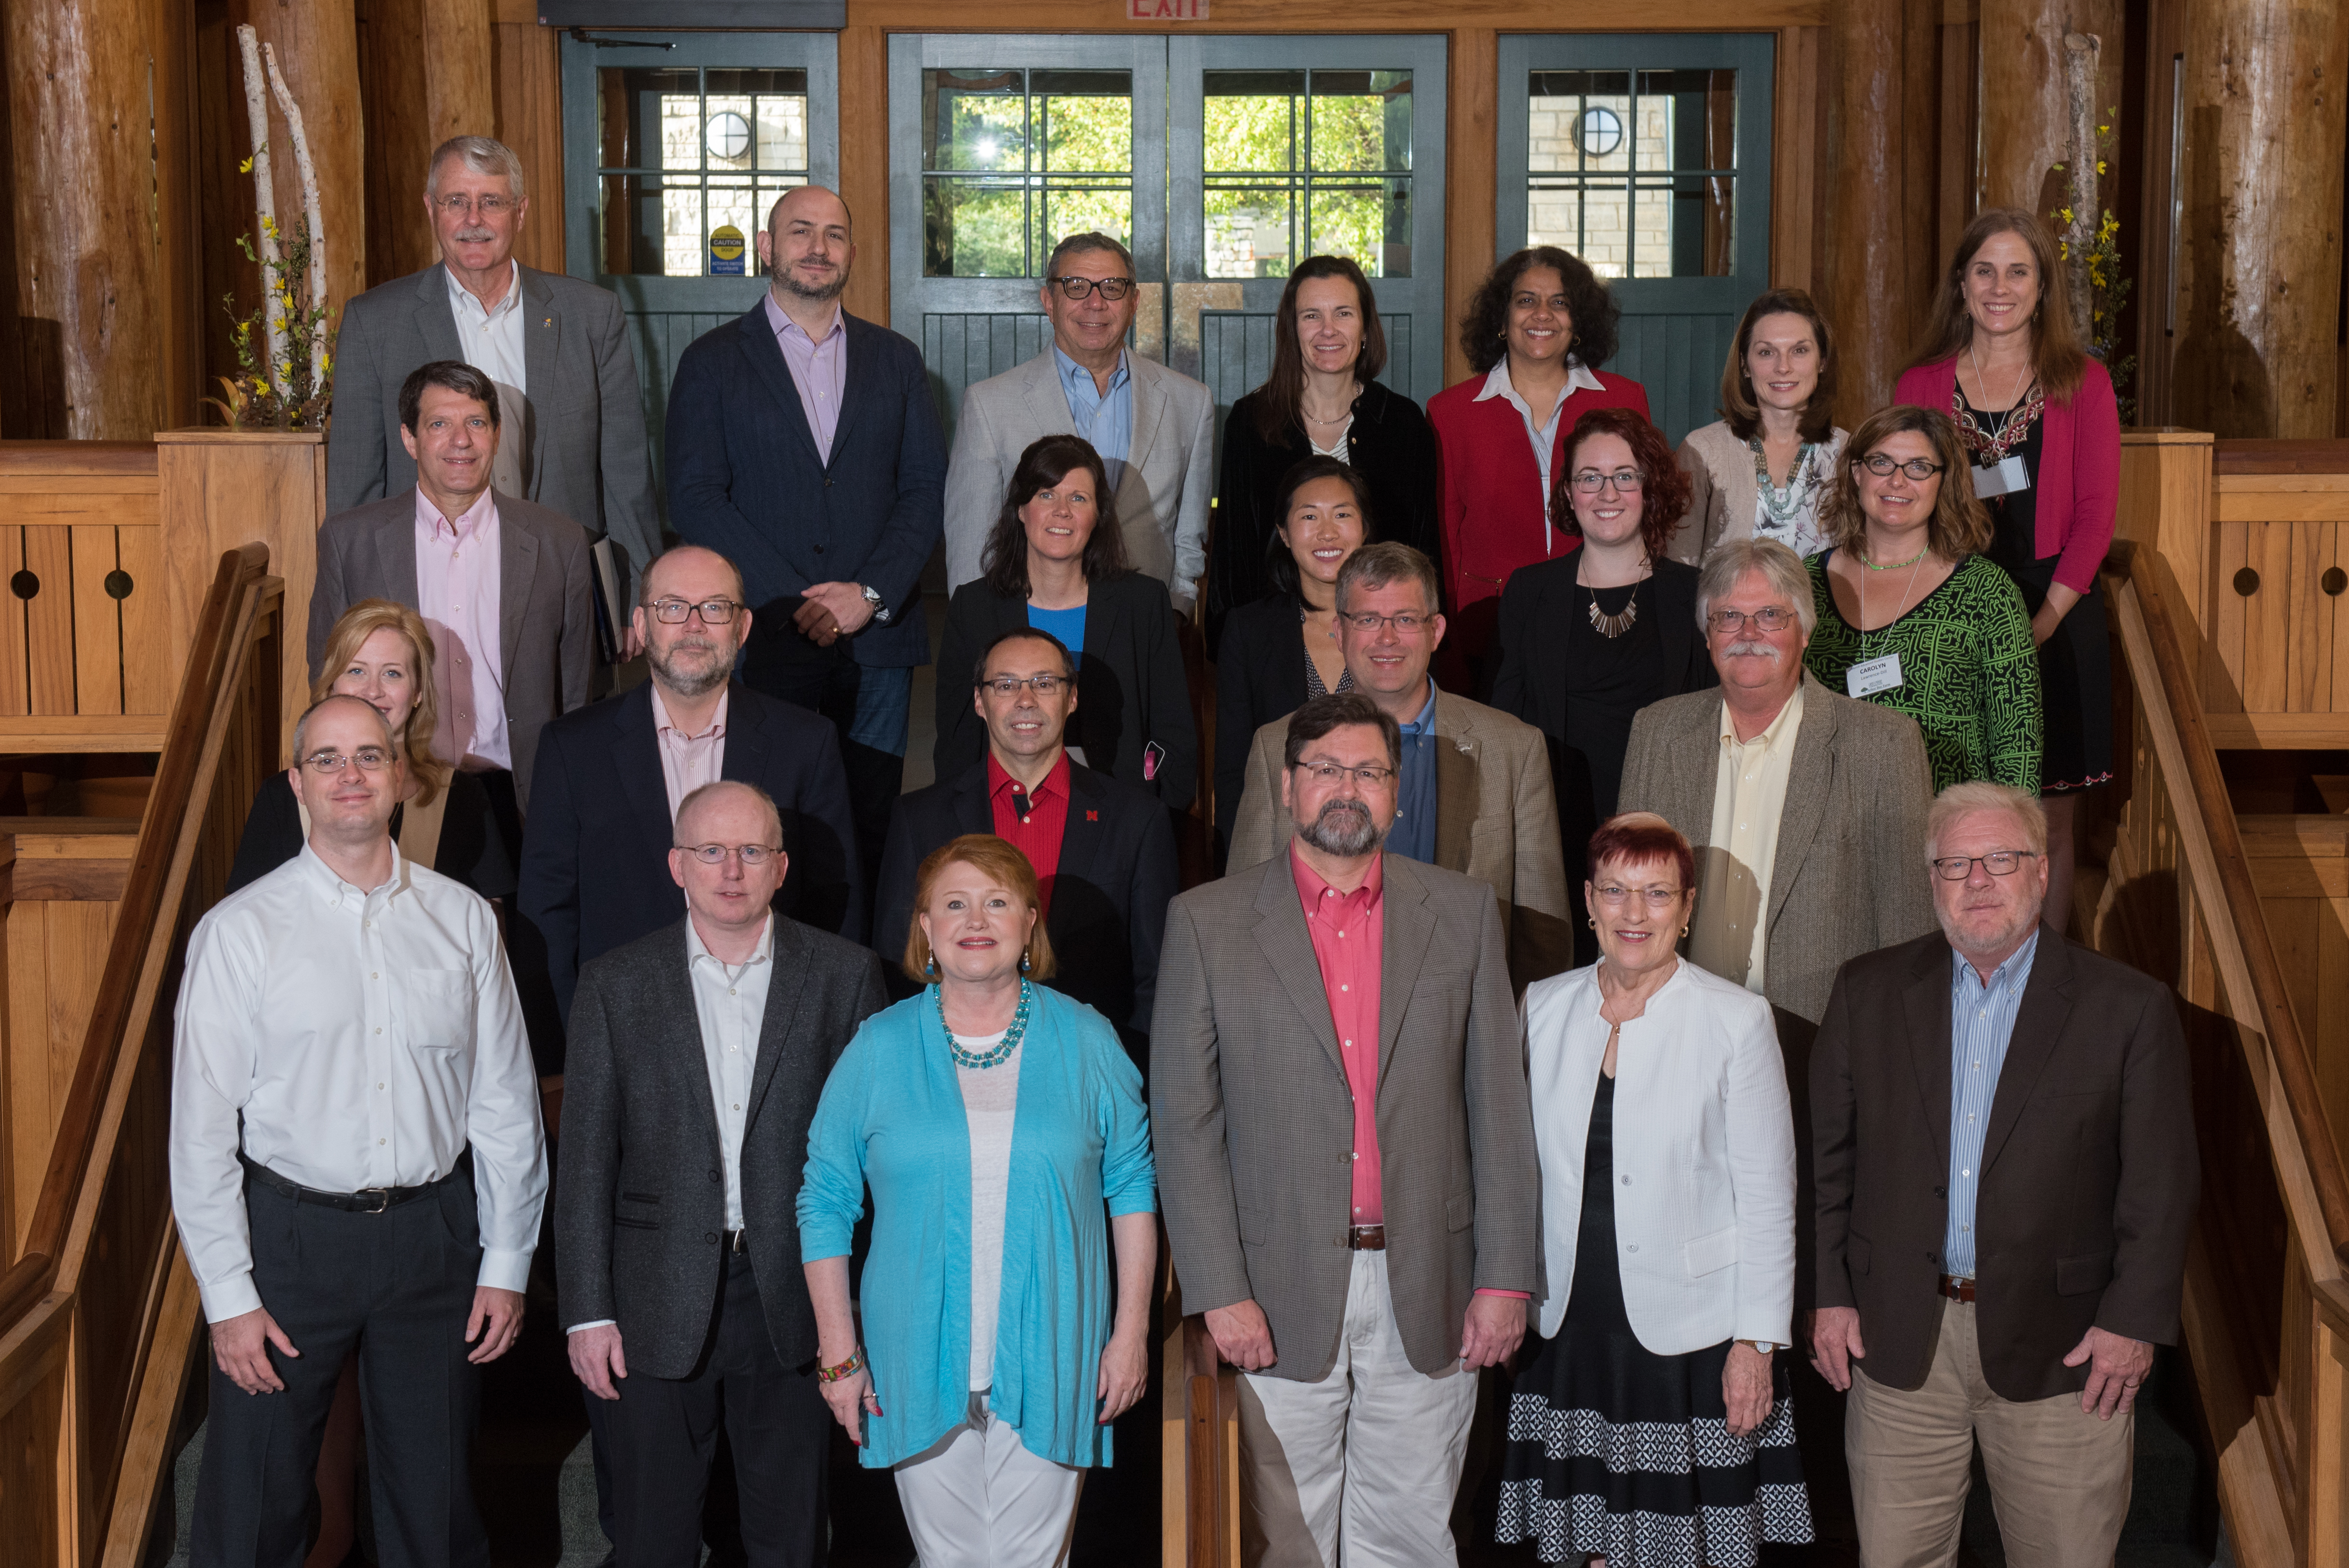 Group photo from 2017 retreat.  First row, left to right: Ian Czarnezki, Mike Cannon, Margaret Rogers, Michael Huerta, Mabel Rice, John Columbo. Second row, Amanda Kulp, Dan Reed, Steve Goddard, Russ Waitman, David Eichman. Third row, Josh Rosenbloom, Amy Sokol, Teresa Girolamo, Claire Selin, Carolyn Lawrence-Dill. Fourth row: Joe Heppert, Carl Lejuezz, Rick Barohn, Jennifer L. Clark, Surya Mallapragada, Kathleen Kelsey Erarnest, Suzanne Scales